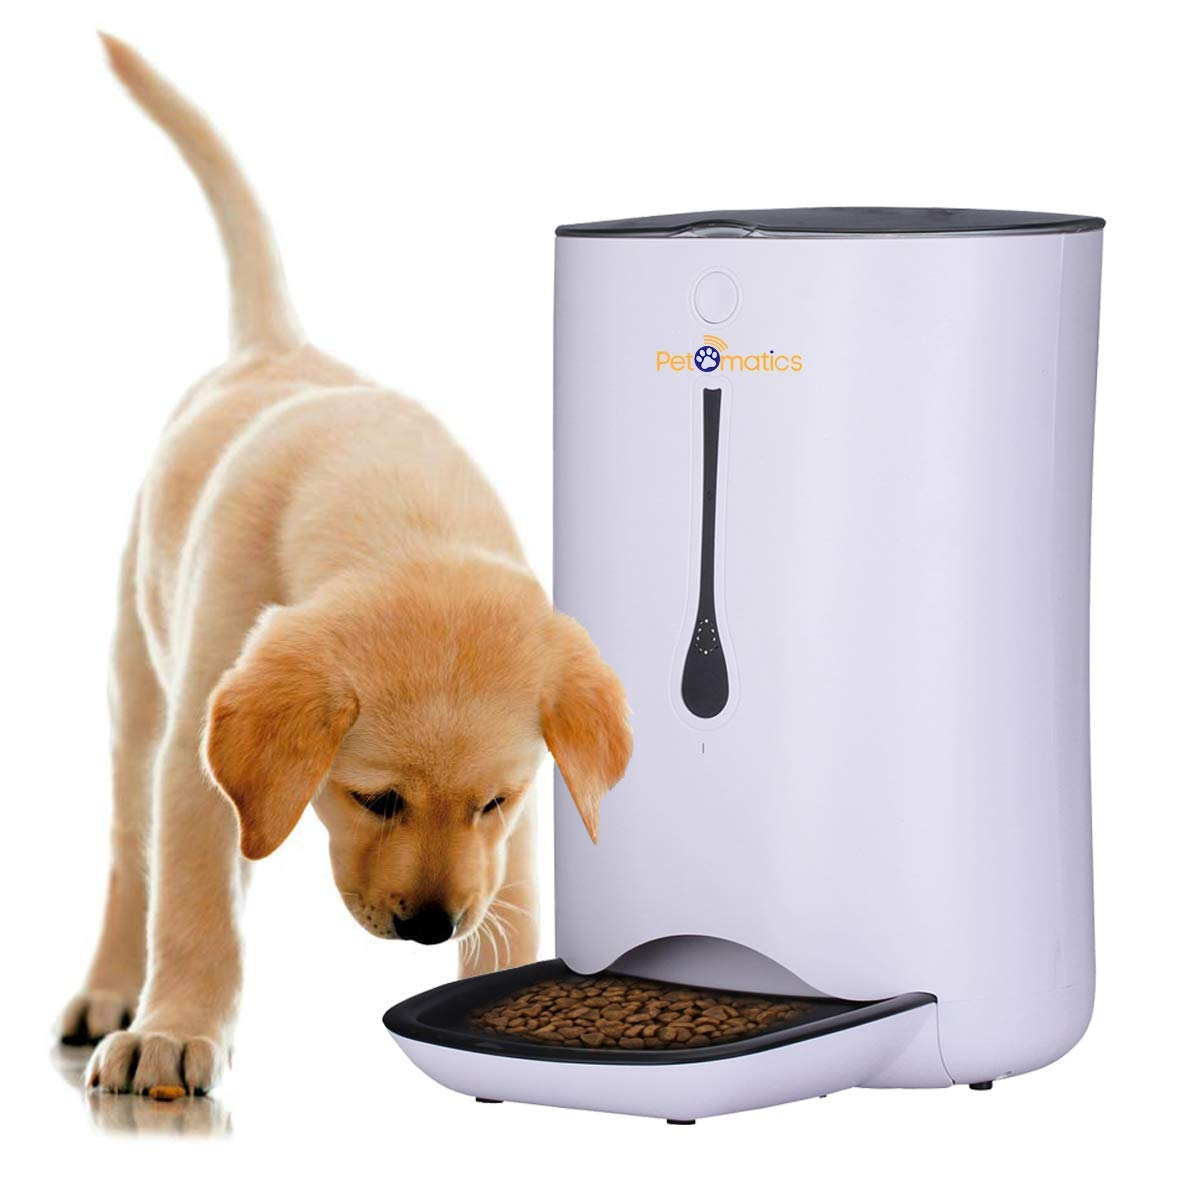 Automatic Pet Feeder Food Dispenser for Cats and Dogs, Programmable Portion Control Meal Scheduling, Voice Control Pet Feeder 4 Meals per Day, Battery & Power Supply Pet Feeder by PetOmatics